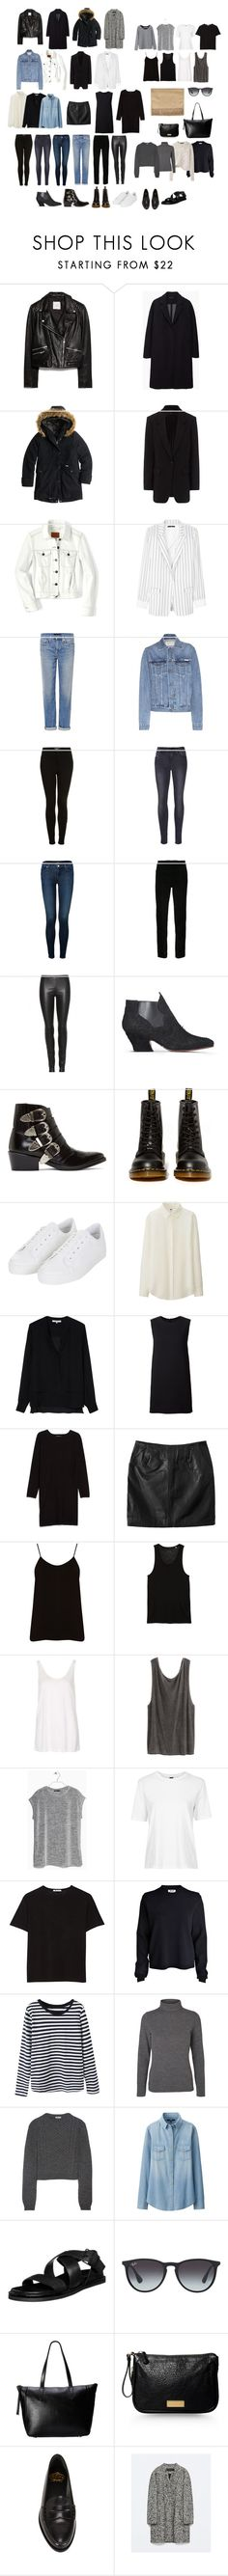 """My basic wardrobe."" by uselessdk ❤ liked on Polyvore featuring MANGO, The Row, J.Crew, rag & bone, FOSSIL, TIBI, Genetic Denim, Calvin Klein Jeans, Topshop and Frame"